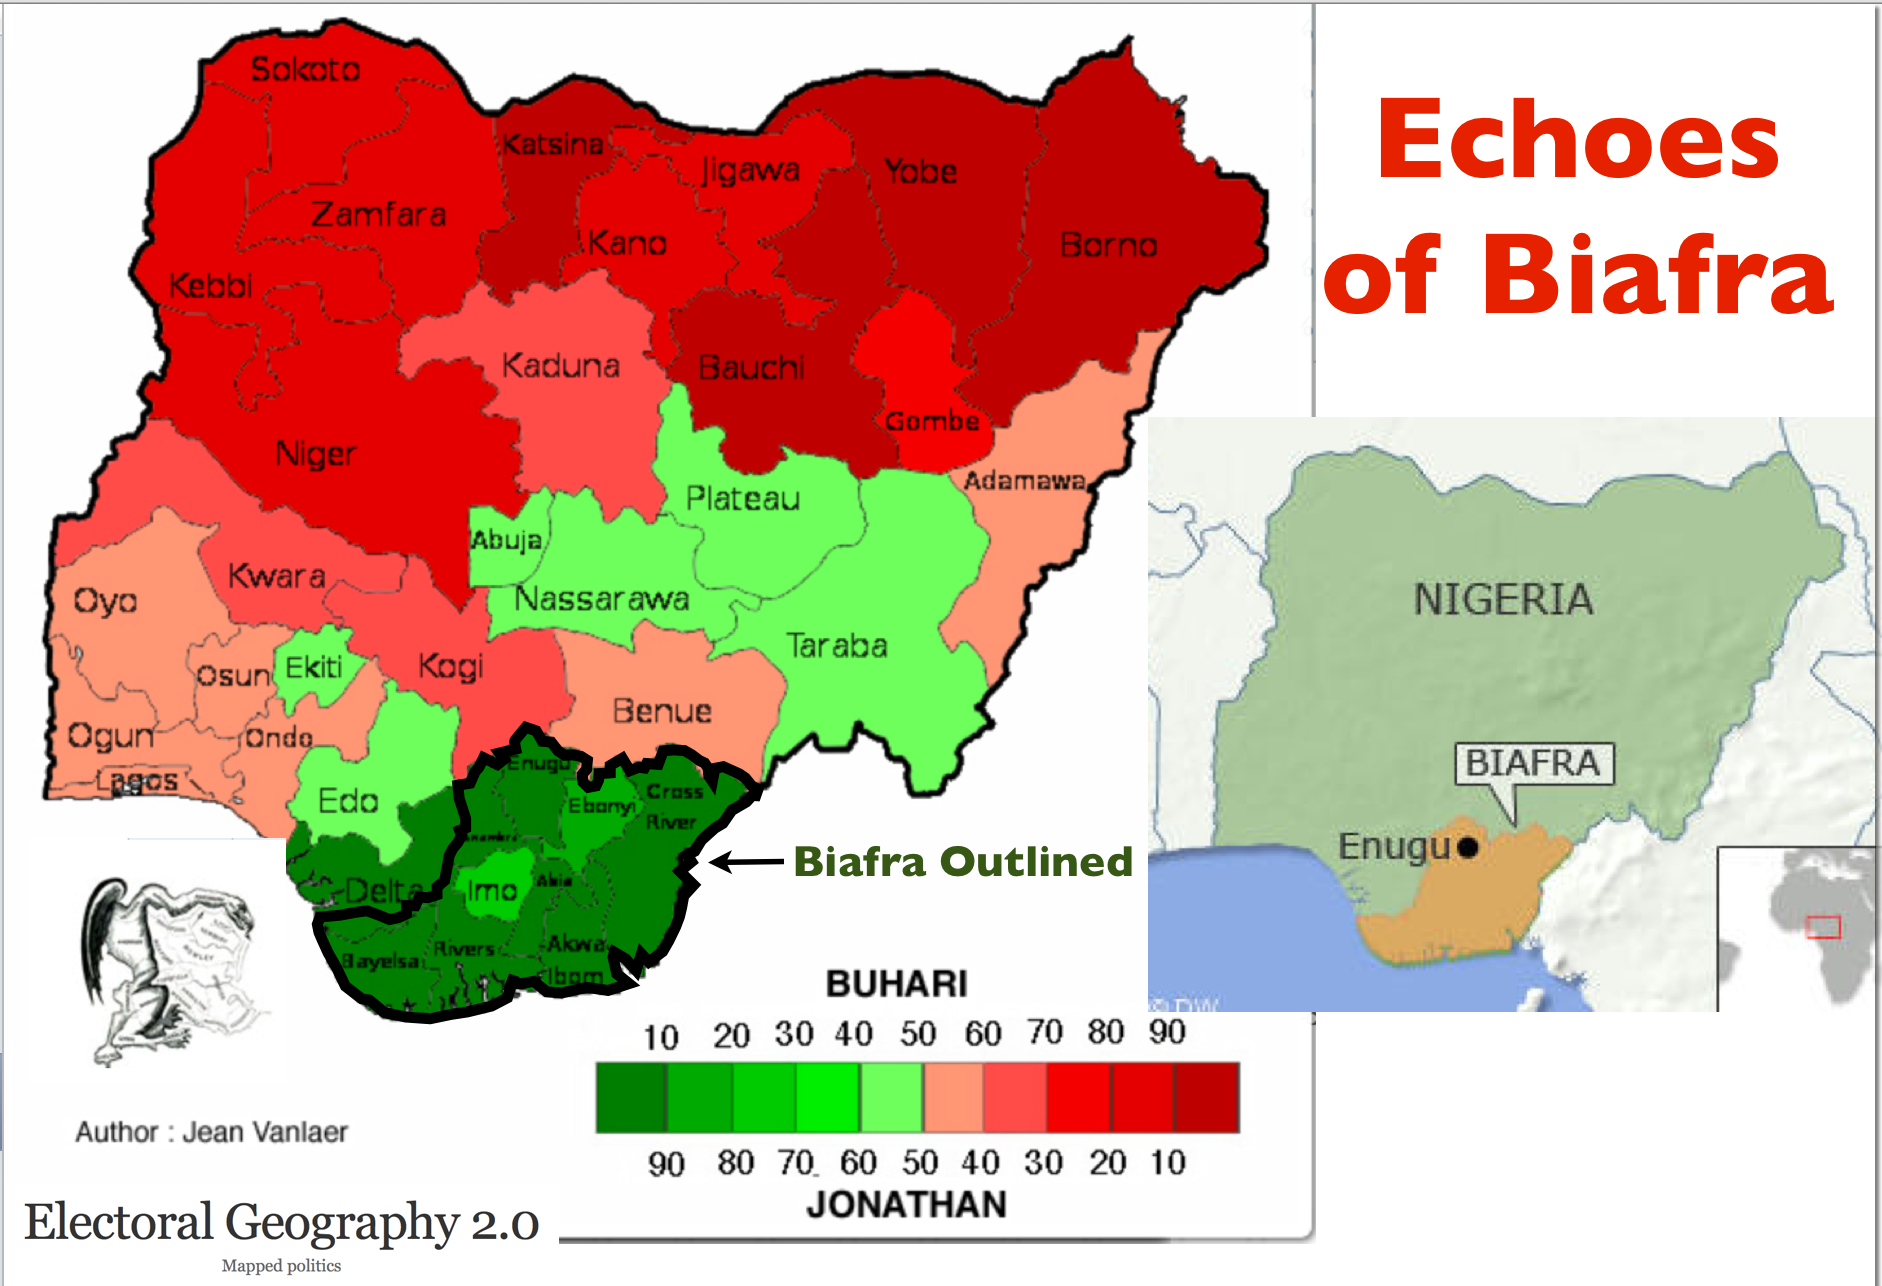 Echoes of Biafra Geographical Patterns in Nigeria s 2015 Election